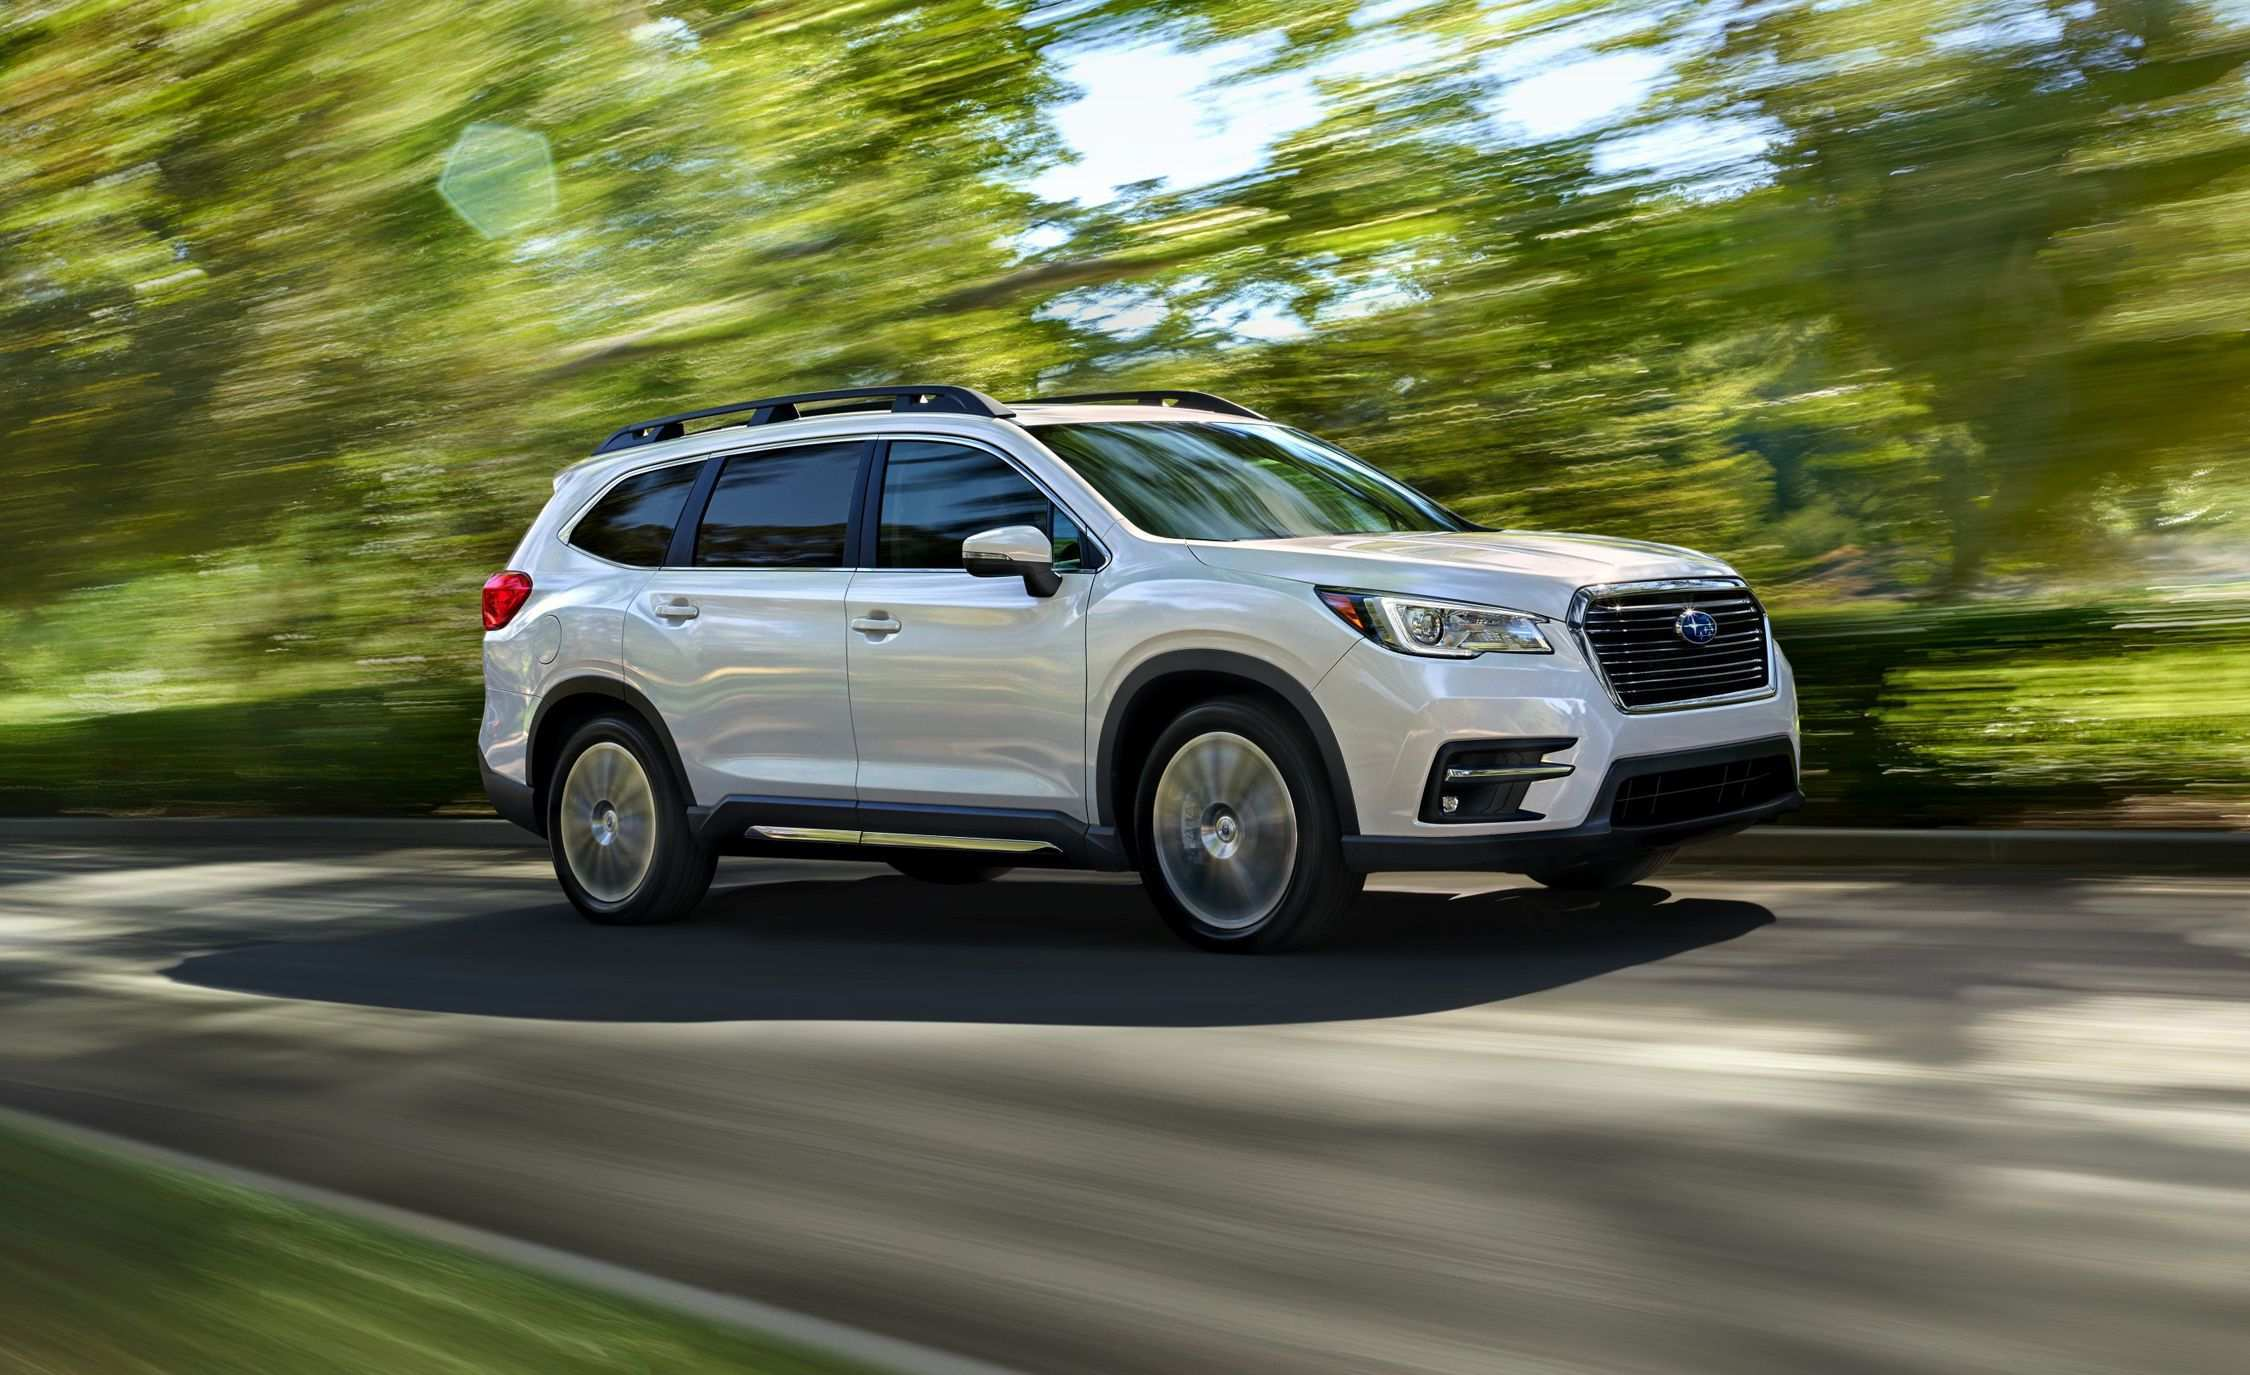 64 Gallery of 2019 Subaru Ascent Towing Capacity Release Date by 2019 Subaru Ascent Towing Capacity